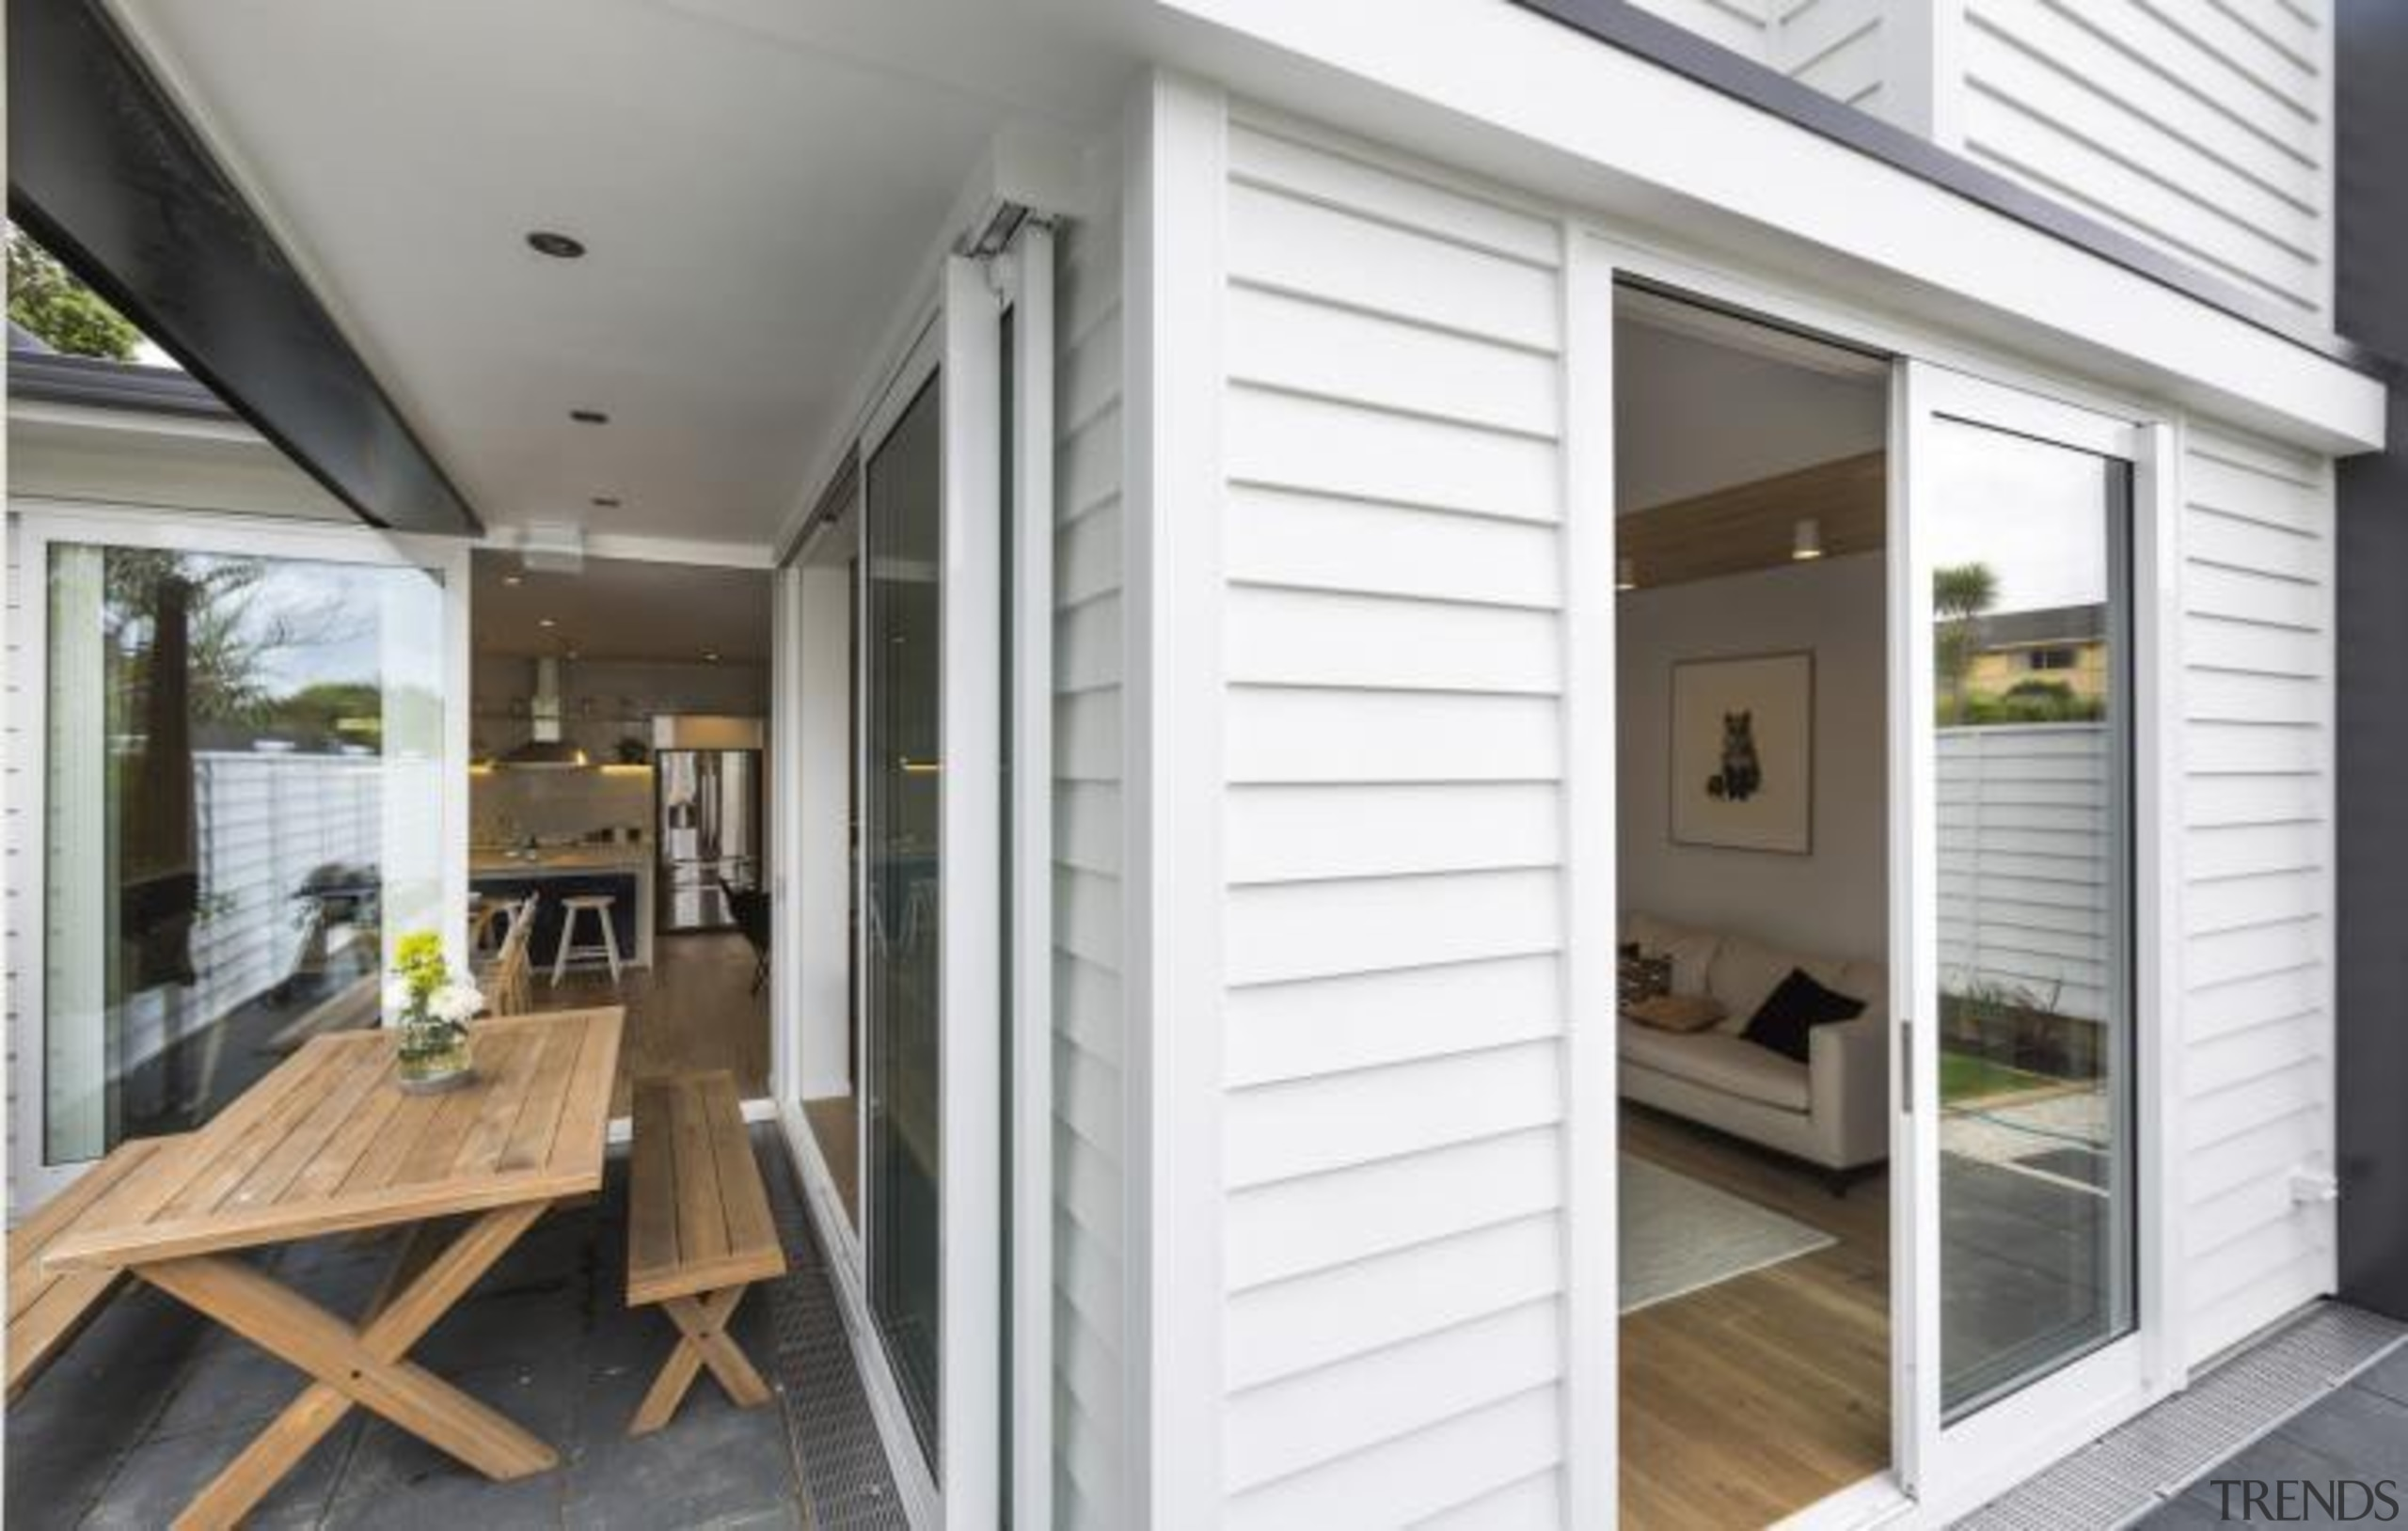 Simpler. Faster. Proven Weathertight. - A-lign Concealed Fix door, floor, home, house, interior design, porch, property, real estate, siding, window, white, gray